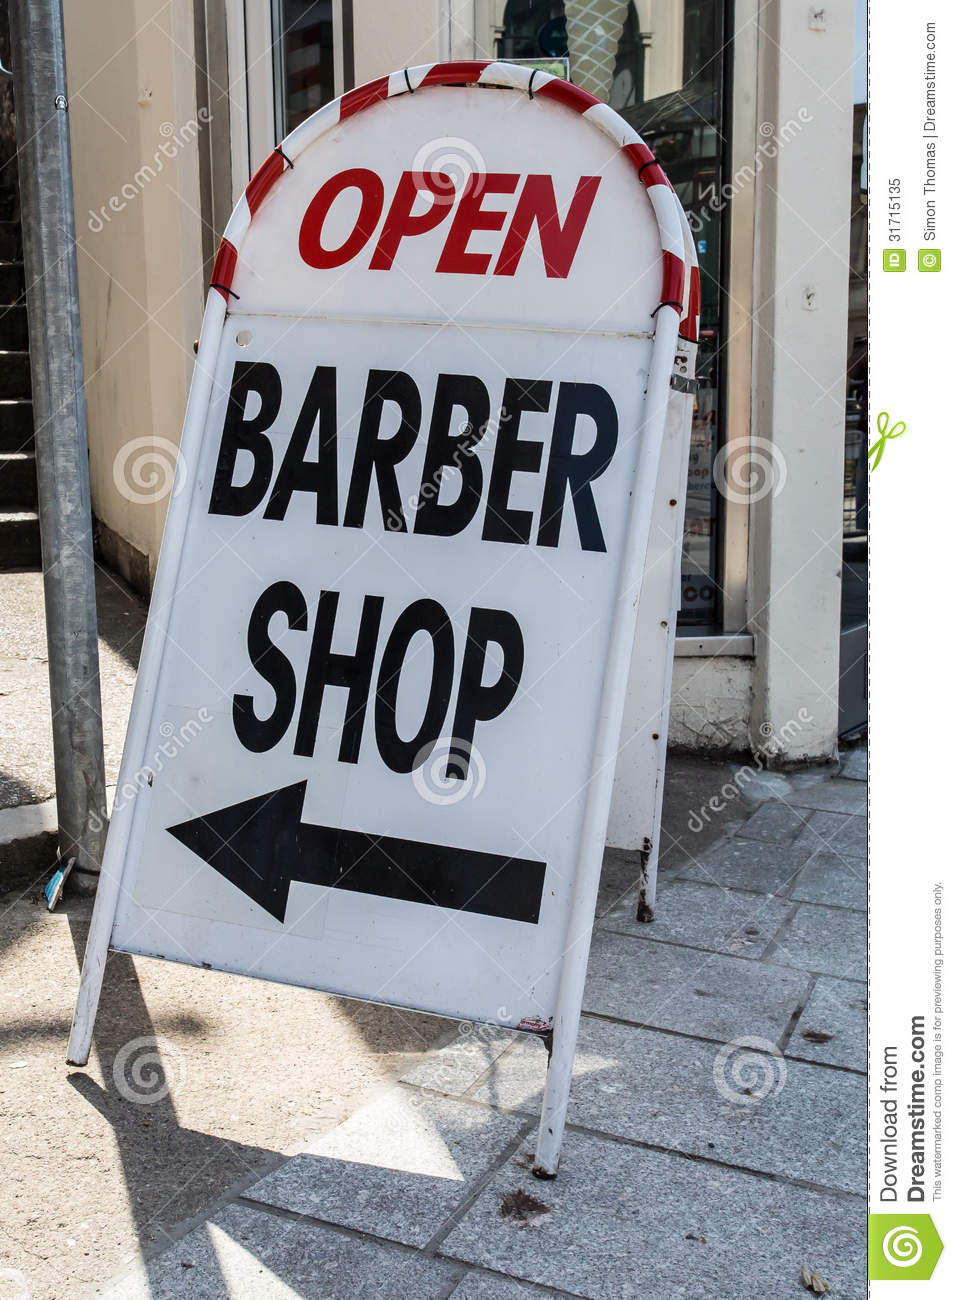 Barber Time : Barber Shop Royalty Free Stock Photo - Image: 31715135